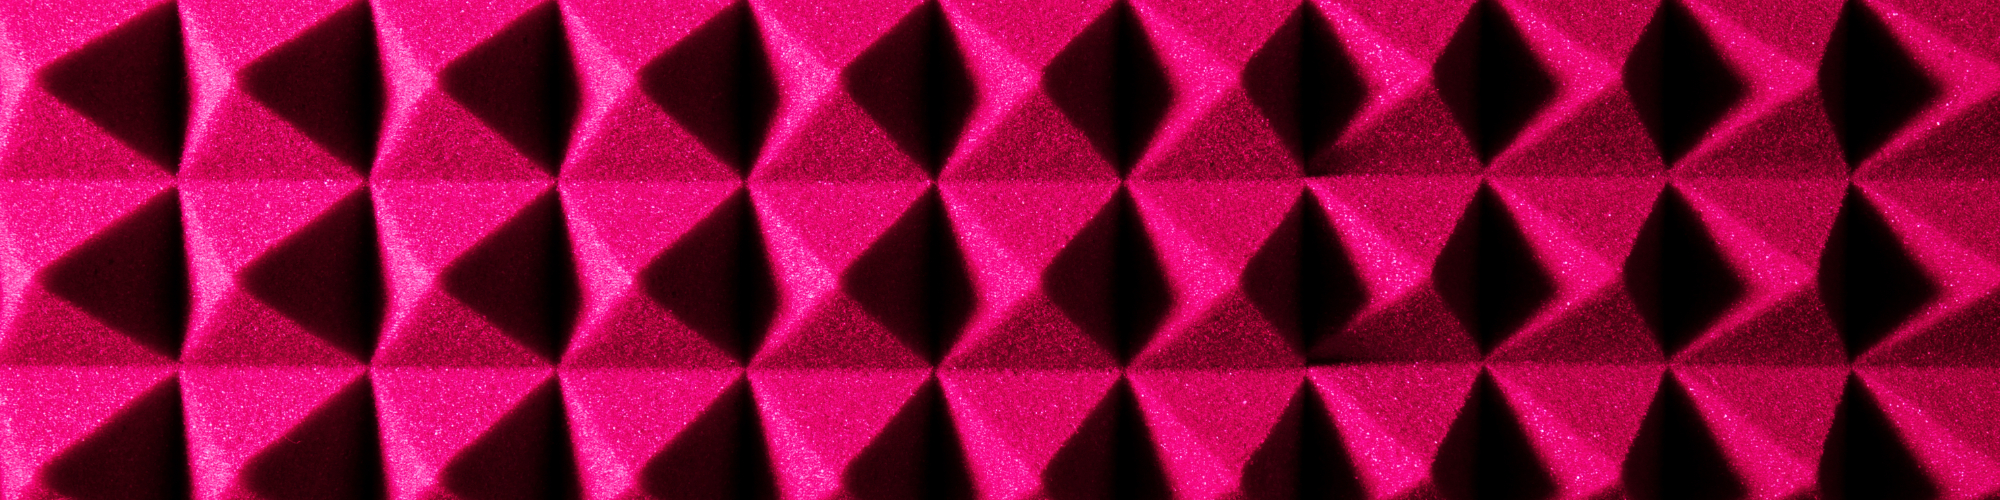 up close of pink soundproofing foam